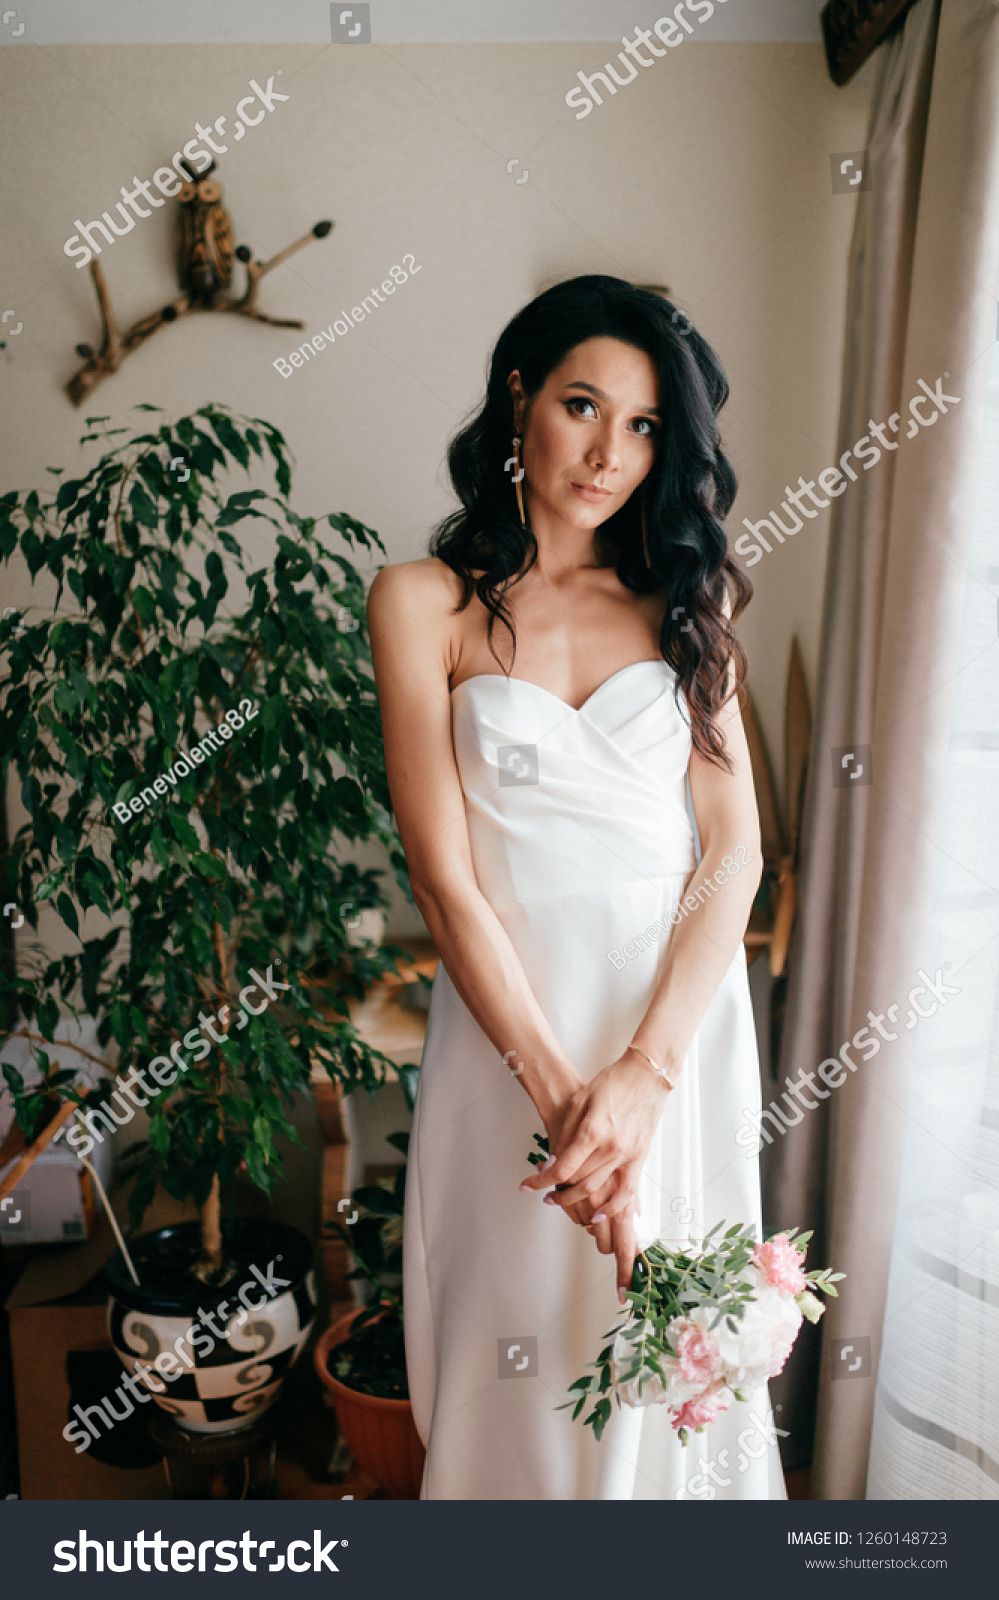 https://image.shutterstock.com/z/stock-photo-pretty-young-caucasian-bride-with-bouquet-of-flowers-posing-indoor-lovely-girl-with-spanish-1260148723.jpg